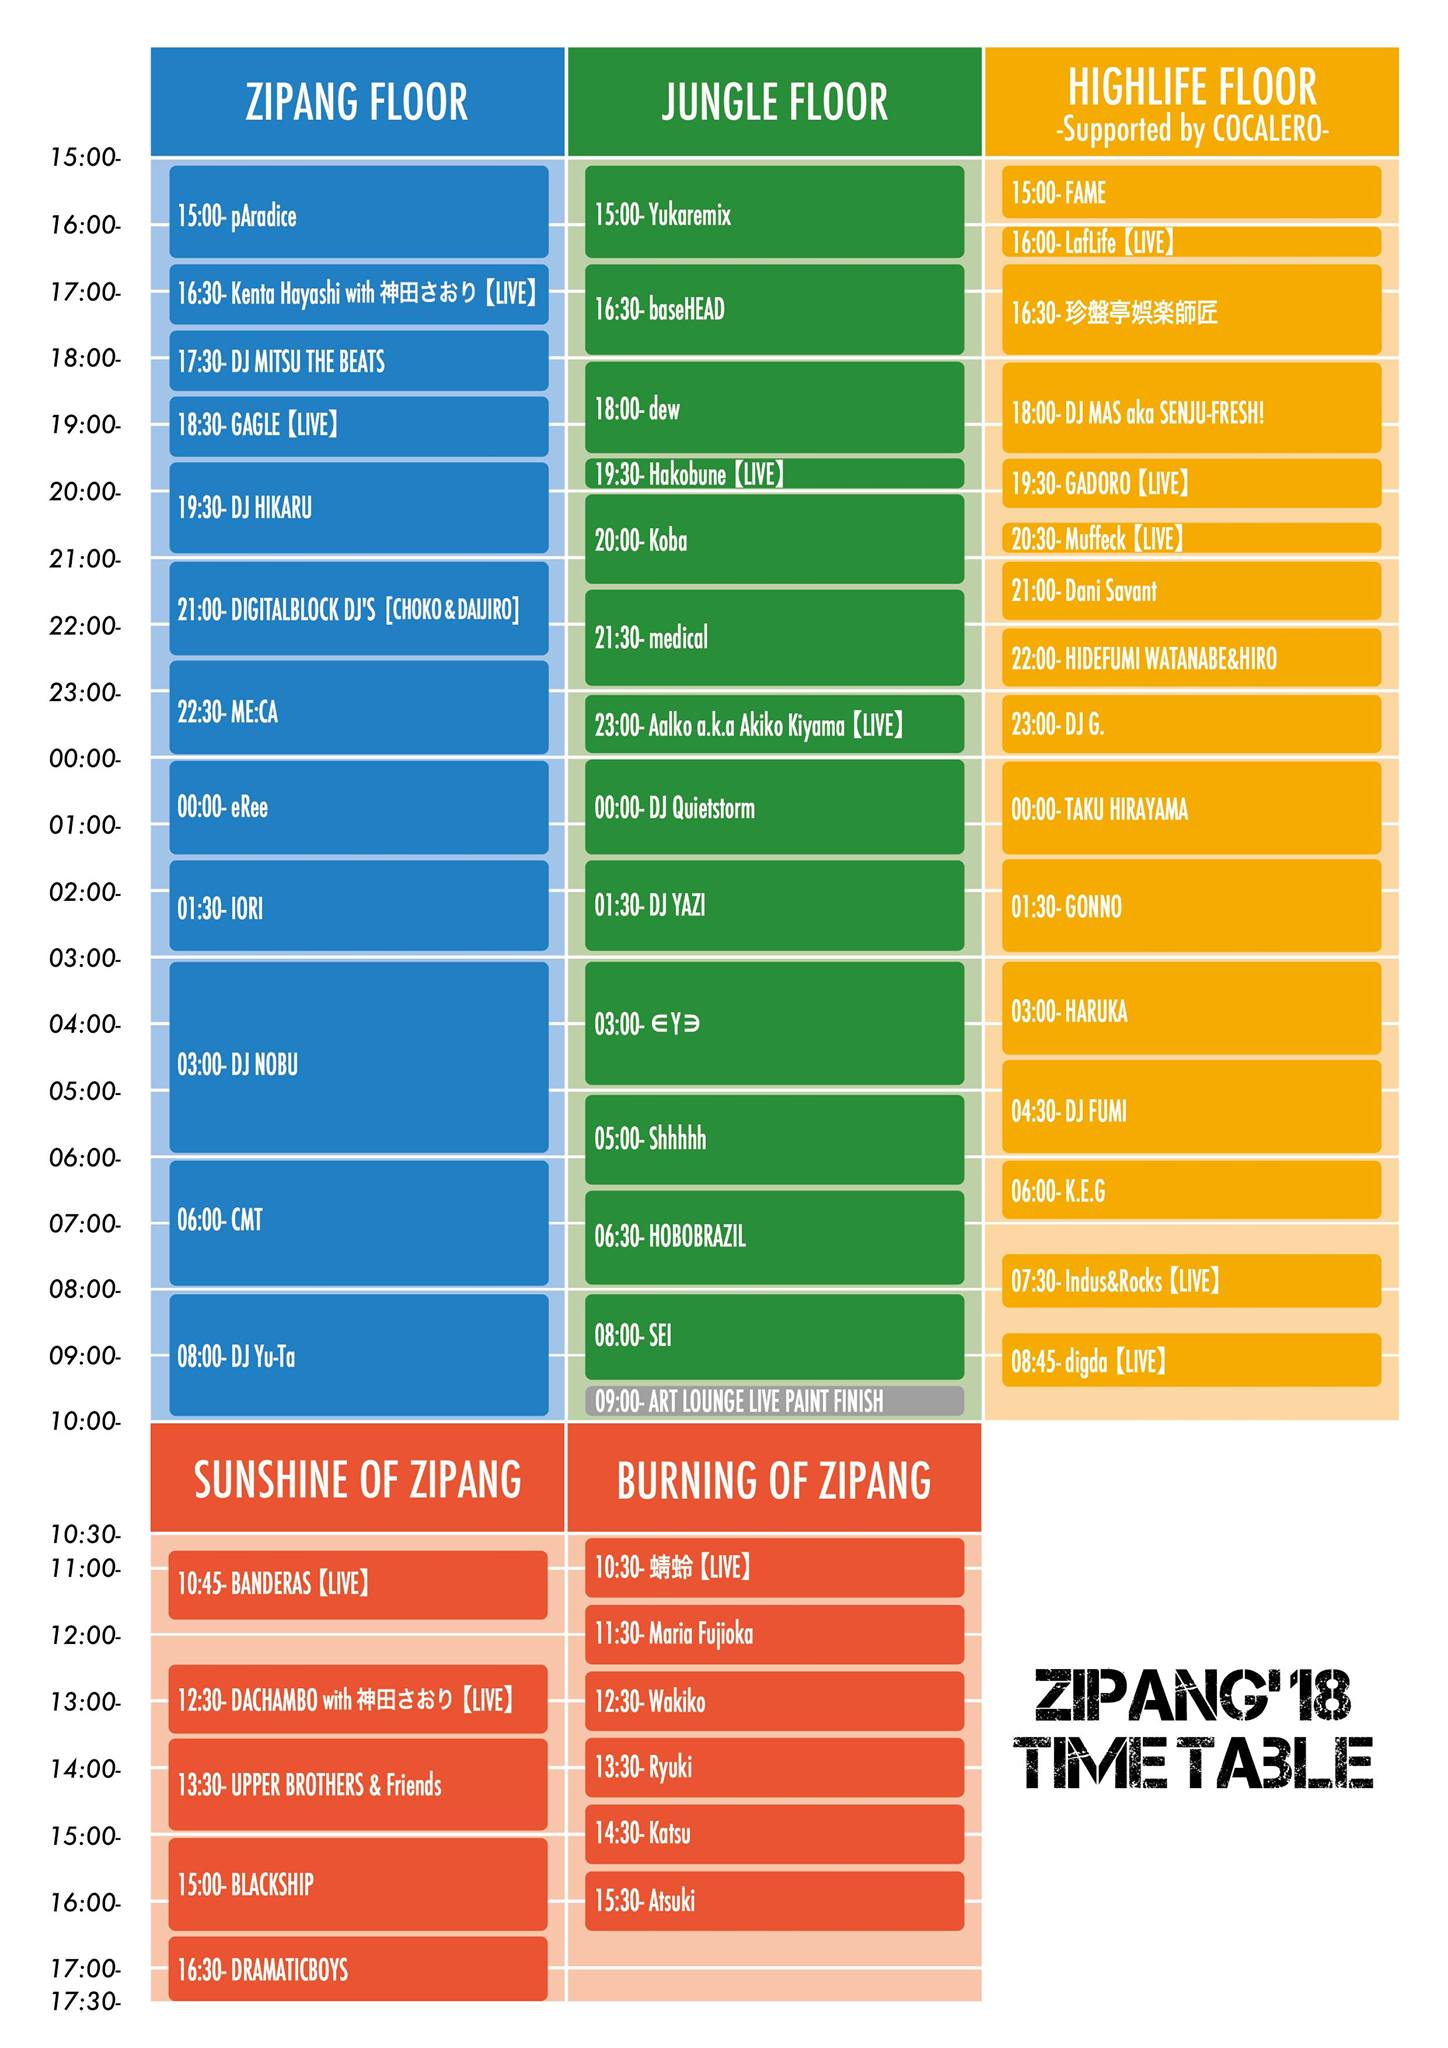 ZIPANG 2018 Time Table